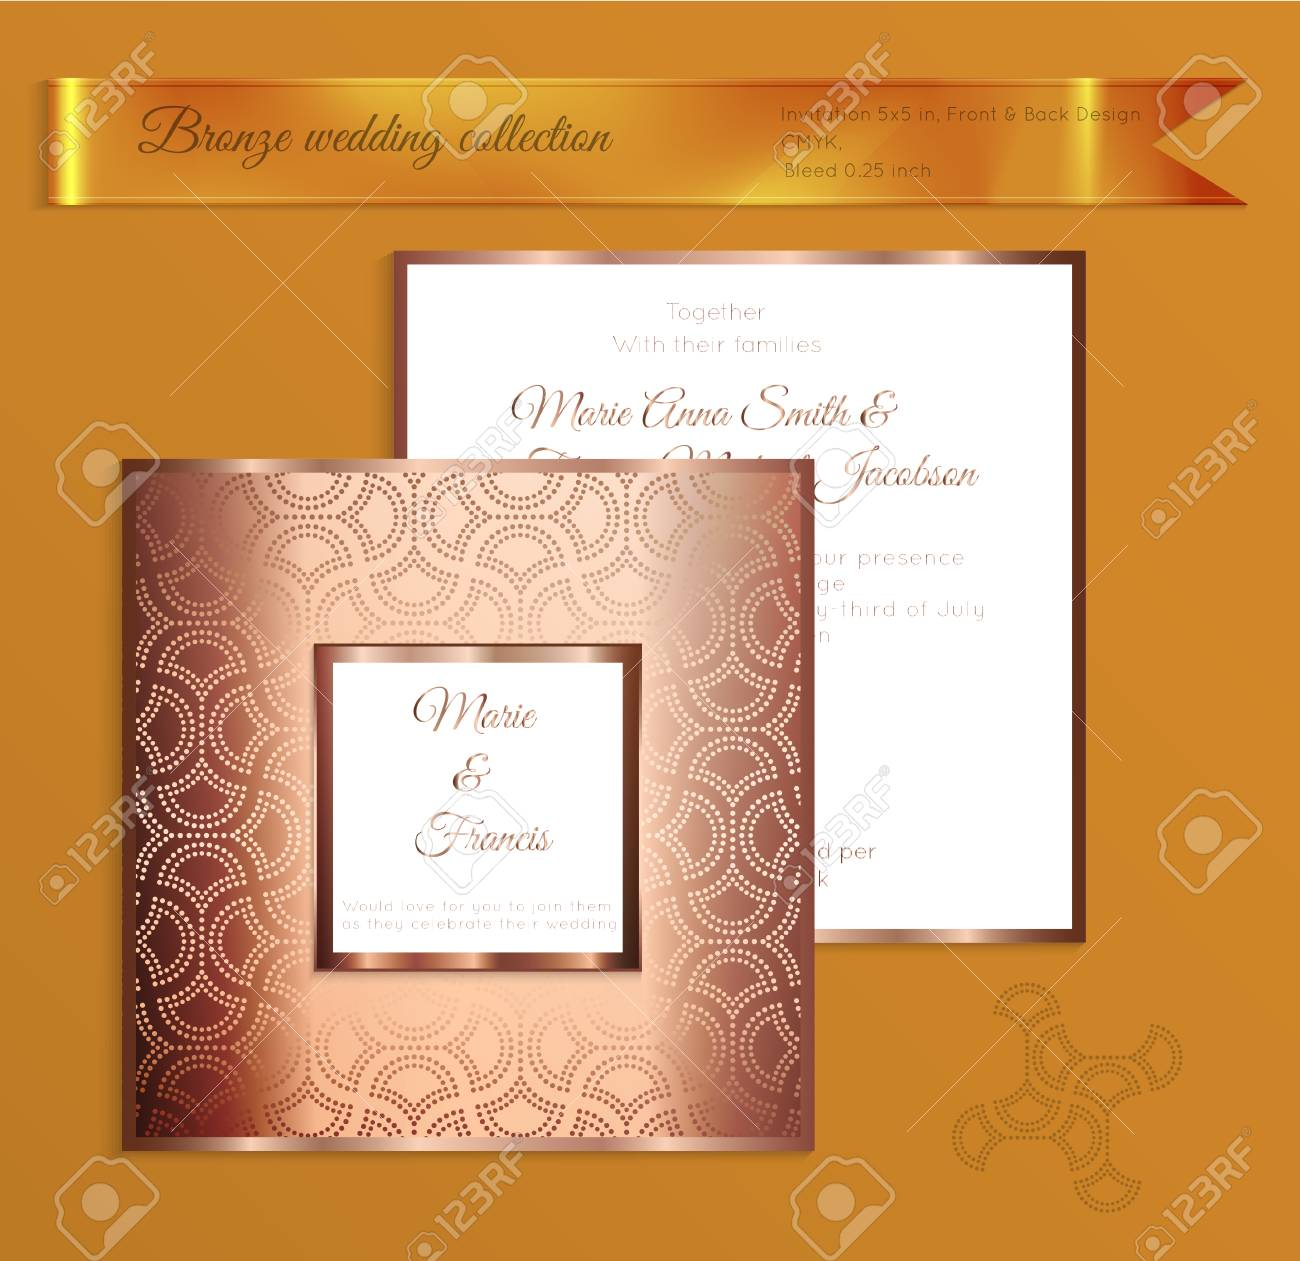 Luxury Bronze Shiny Wedding Invitation Template Back And Front